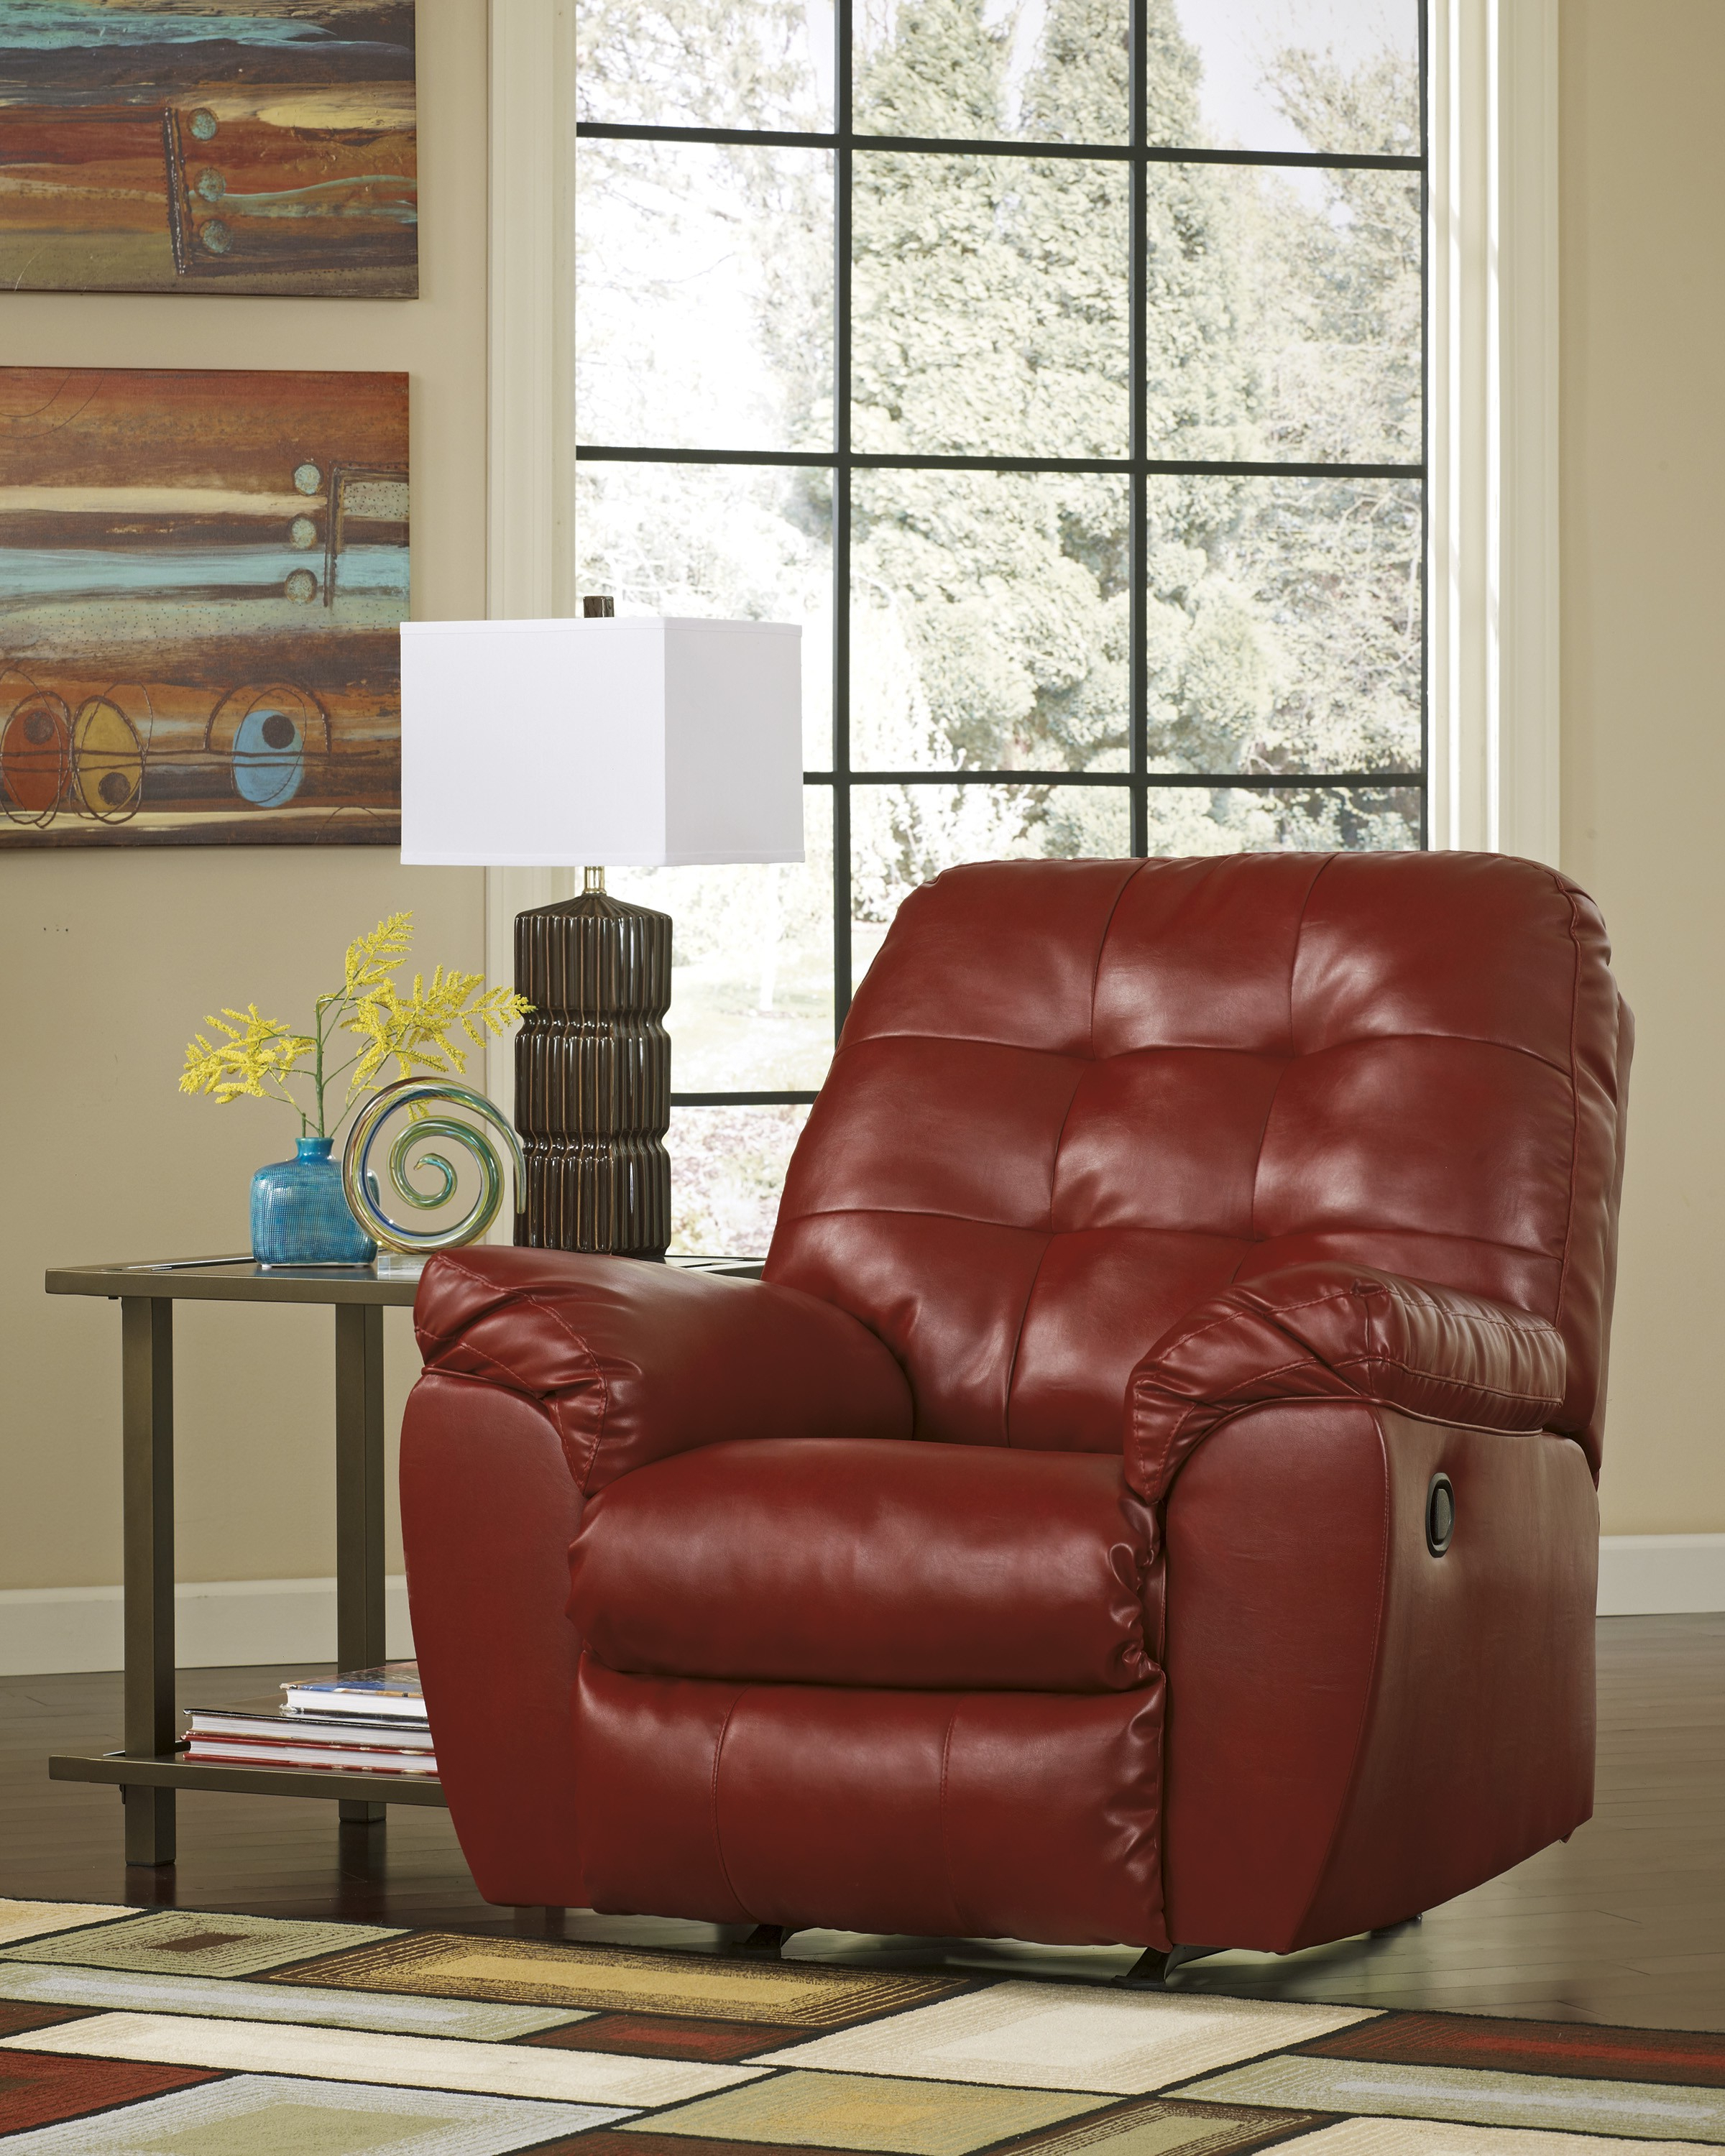 Buy Living Rooms Recliners Online, Phoenix In Hercules Oyster Swivel Glider Recliners (View 3 of 20)